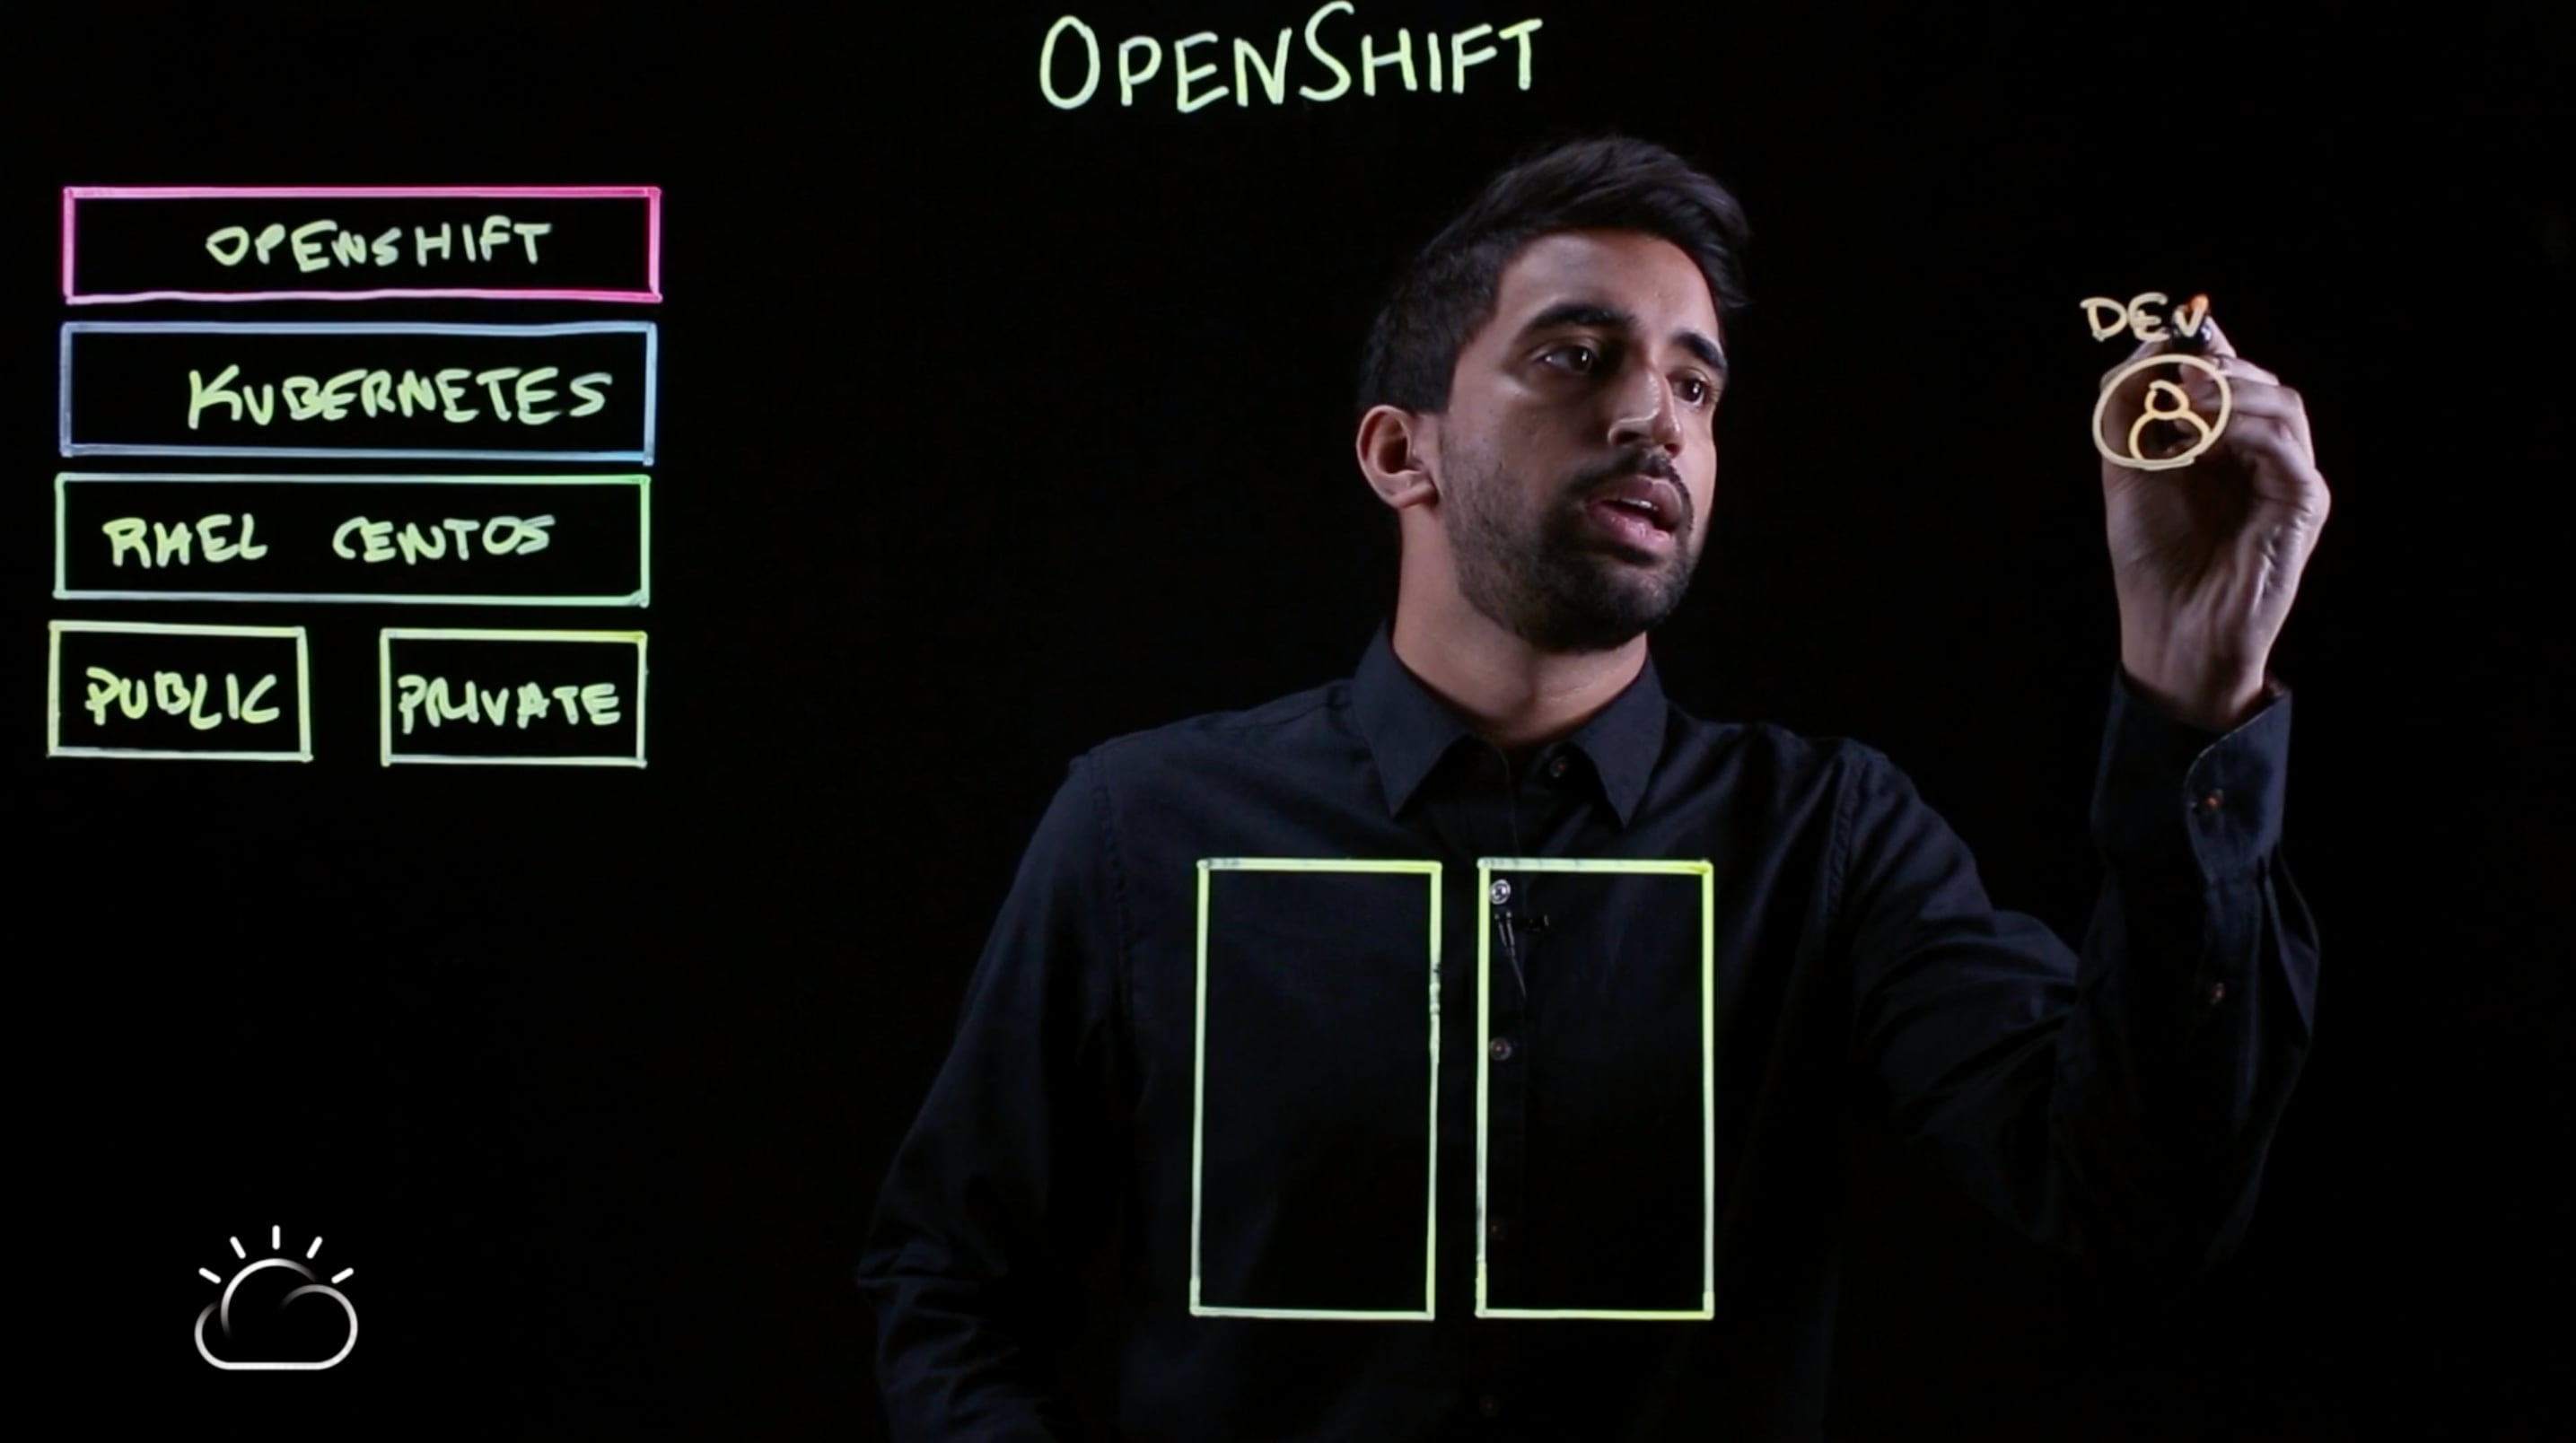 How do developers benefit from OpenShift?